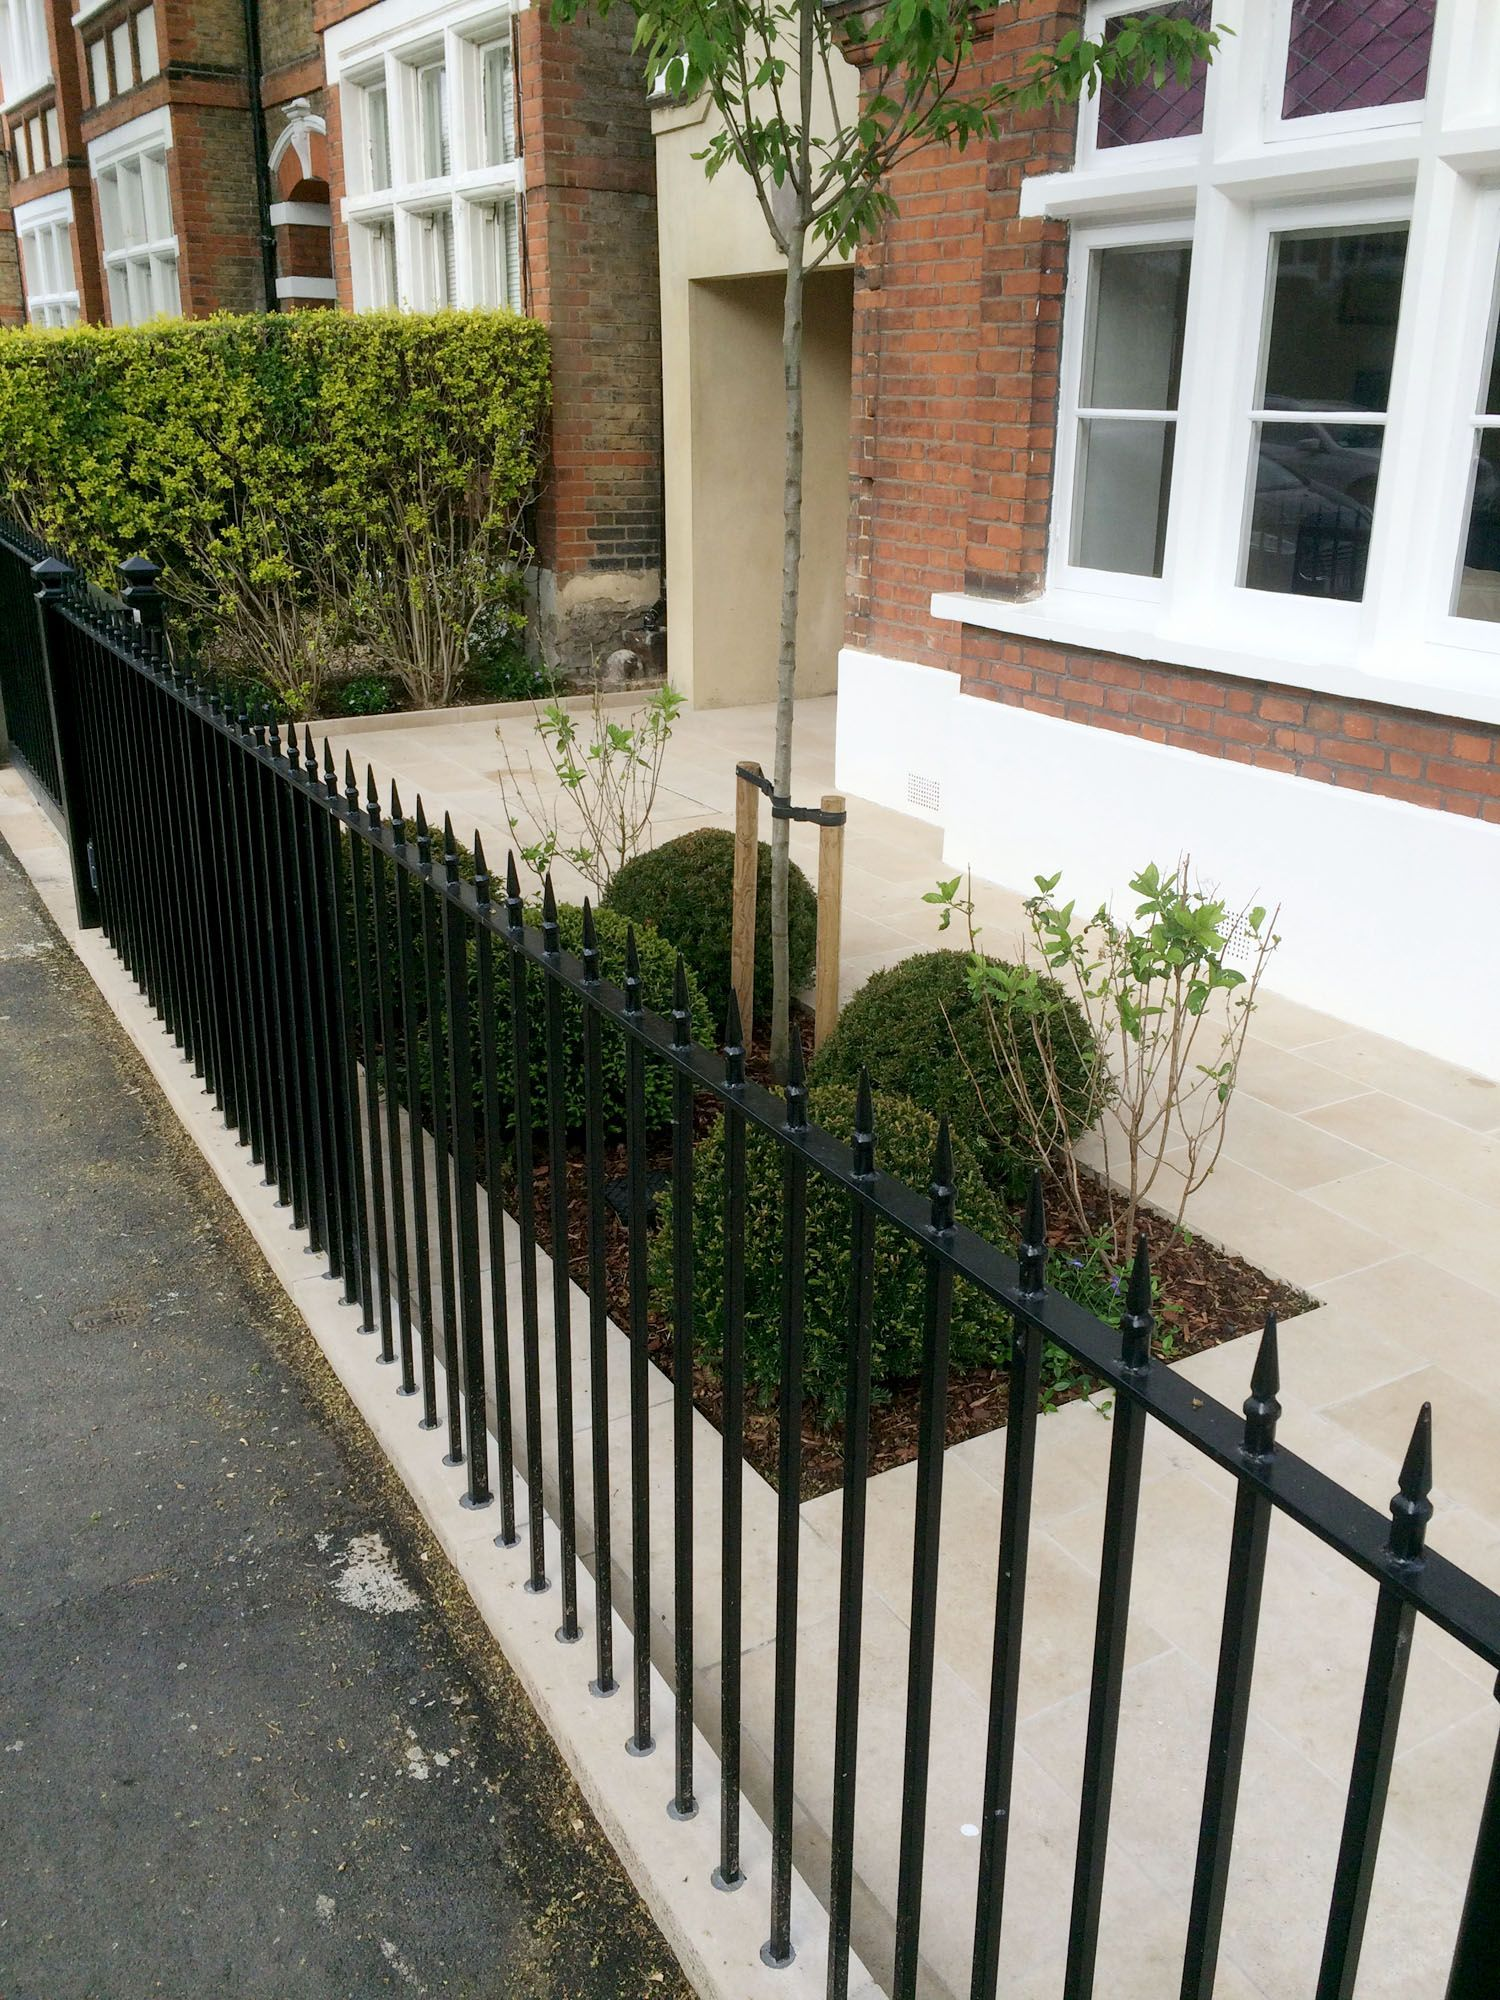 Solid black, cast iron style railings make this London Front